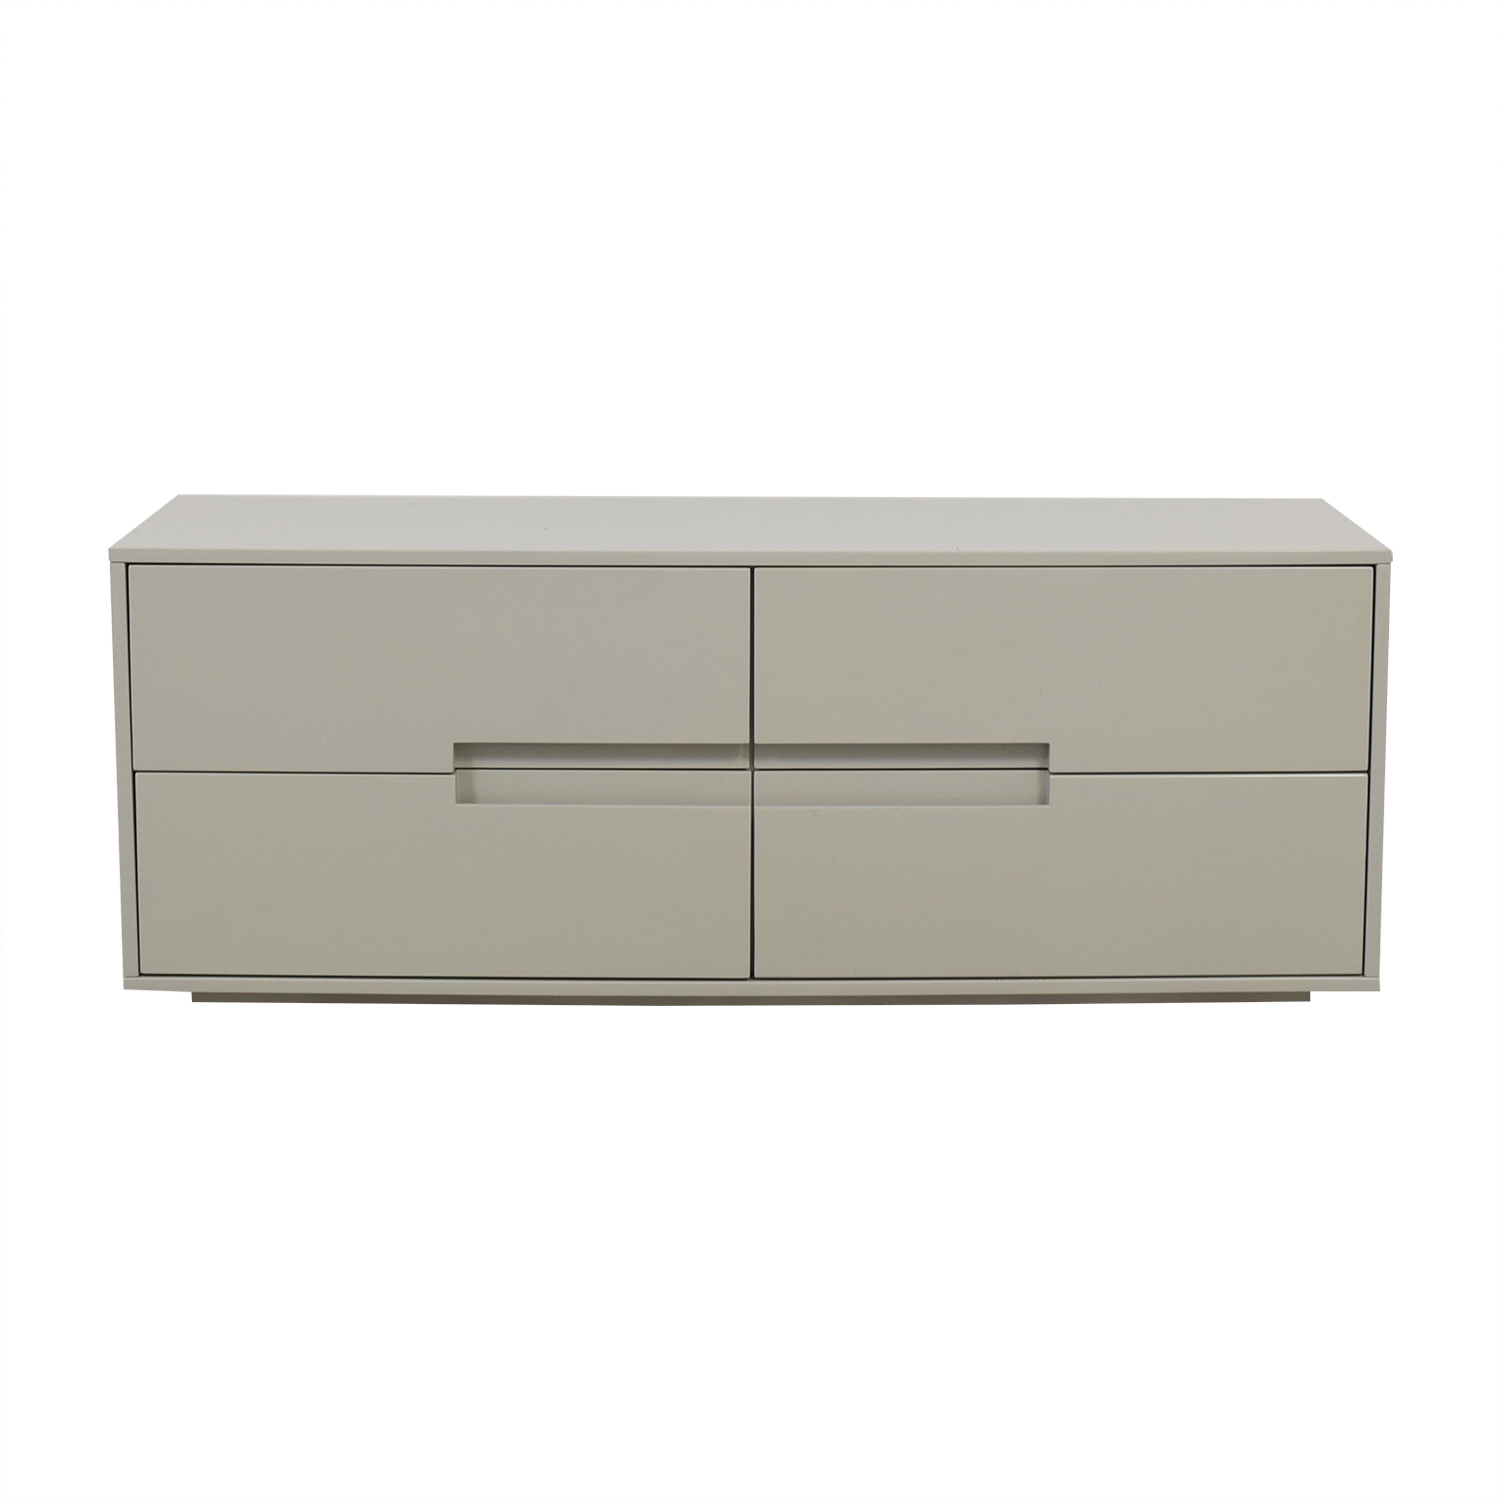 Grey Four-Drawer Cabinet used